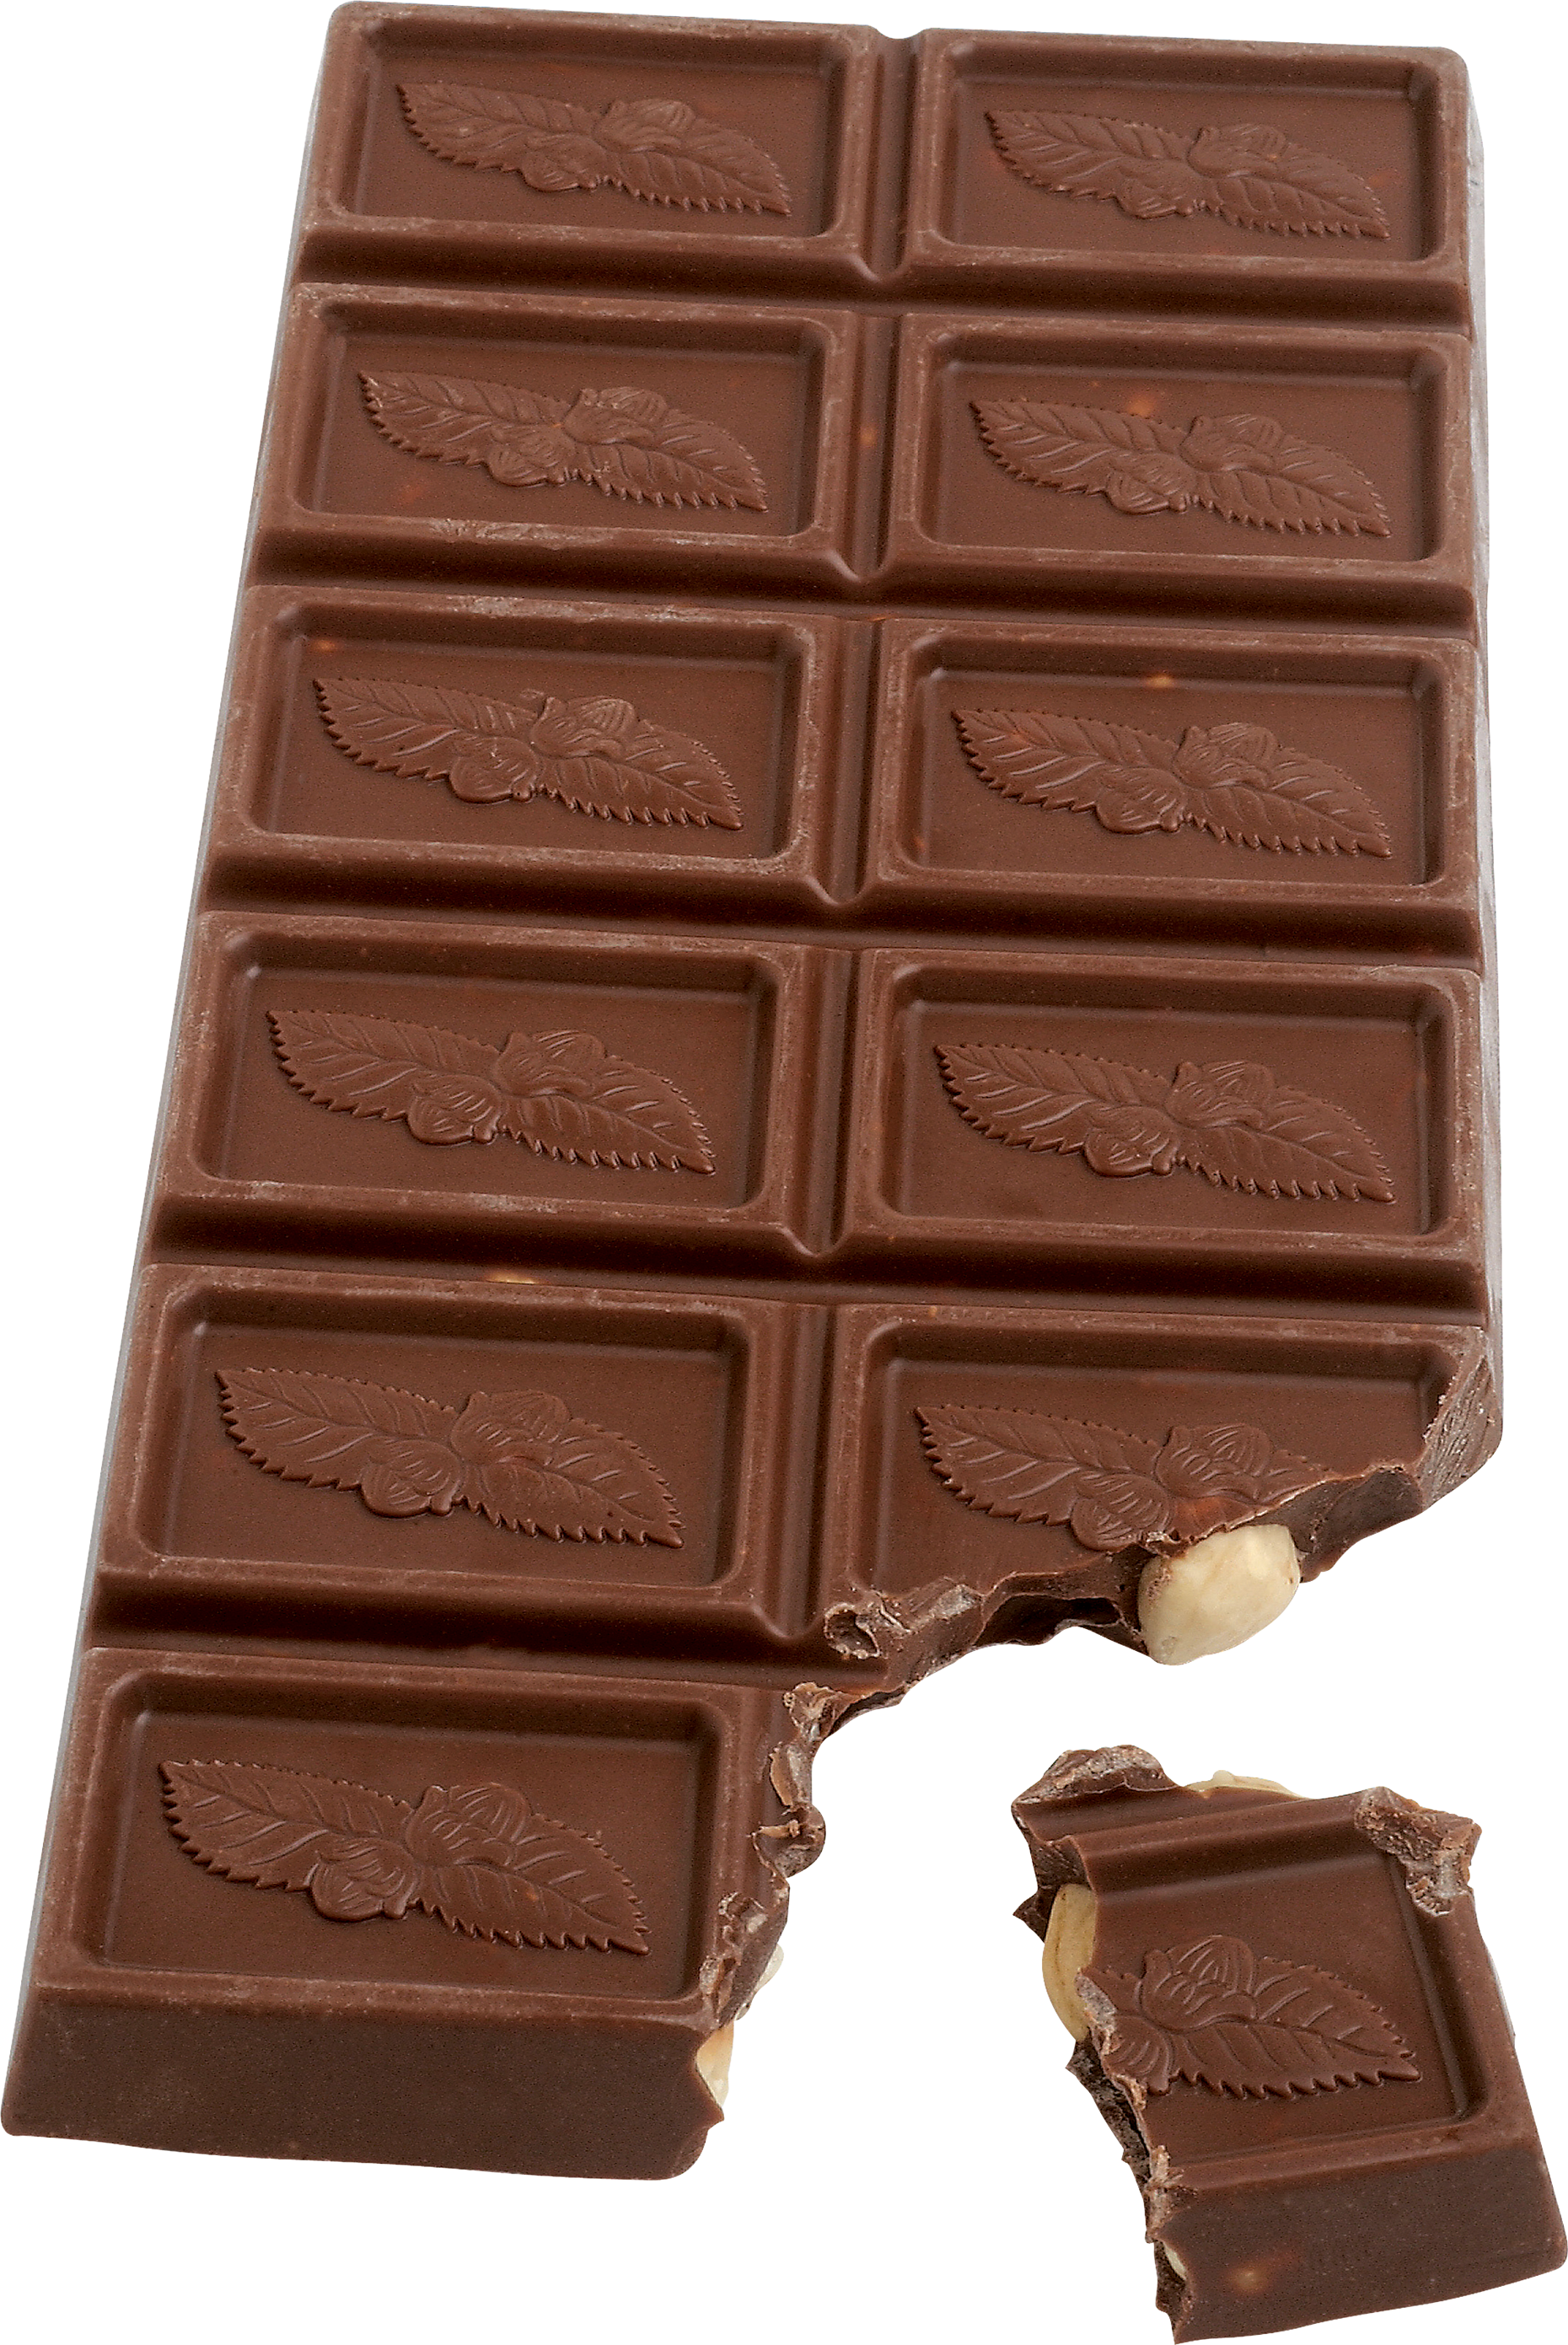 Chocolate PNG images, free chocolate pictures download.